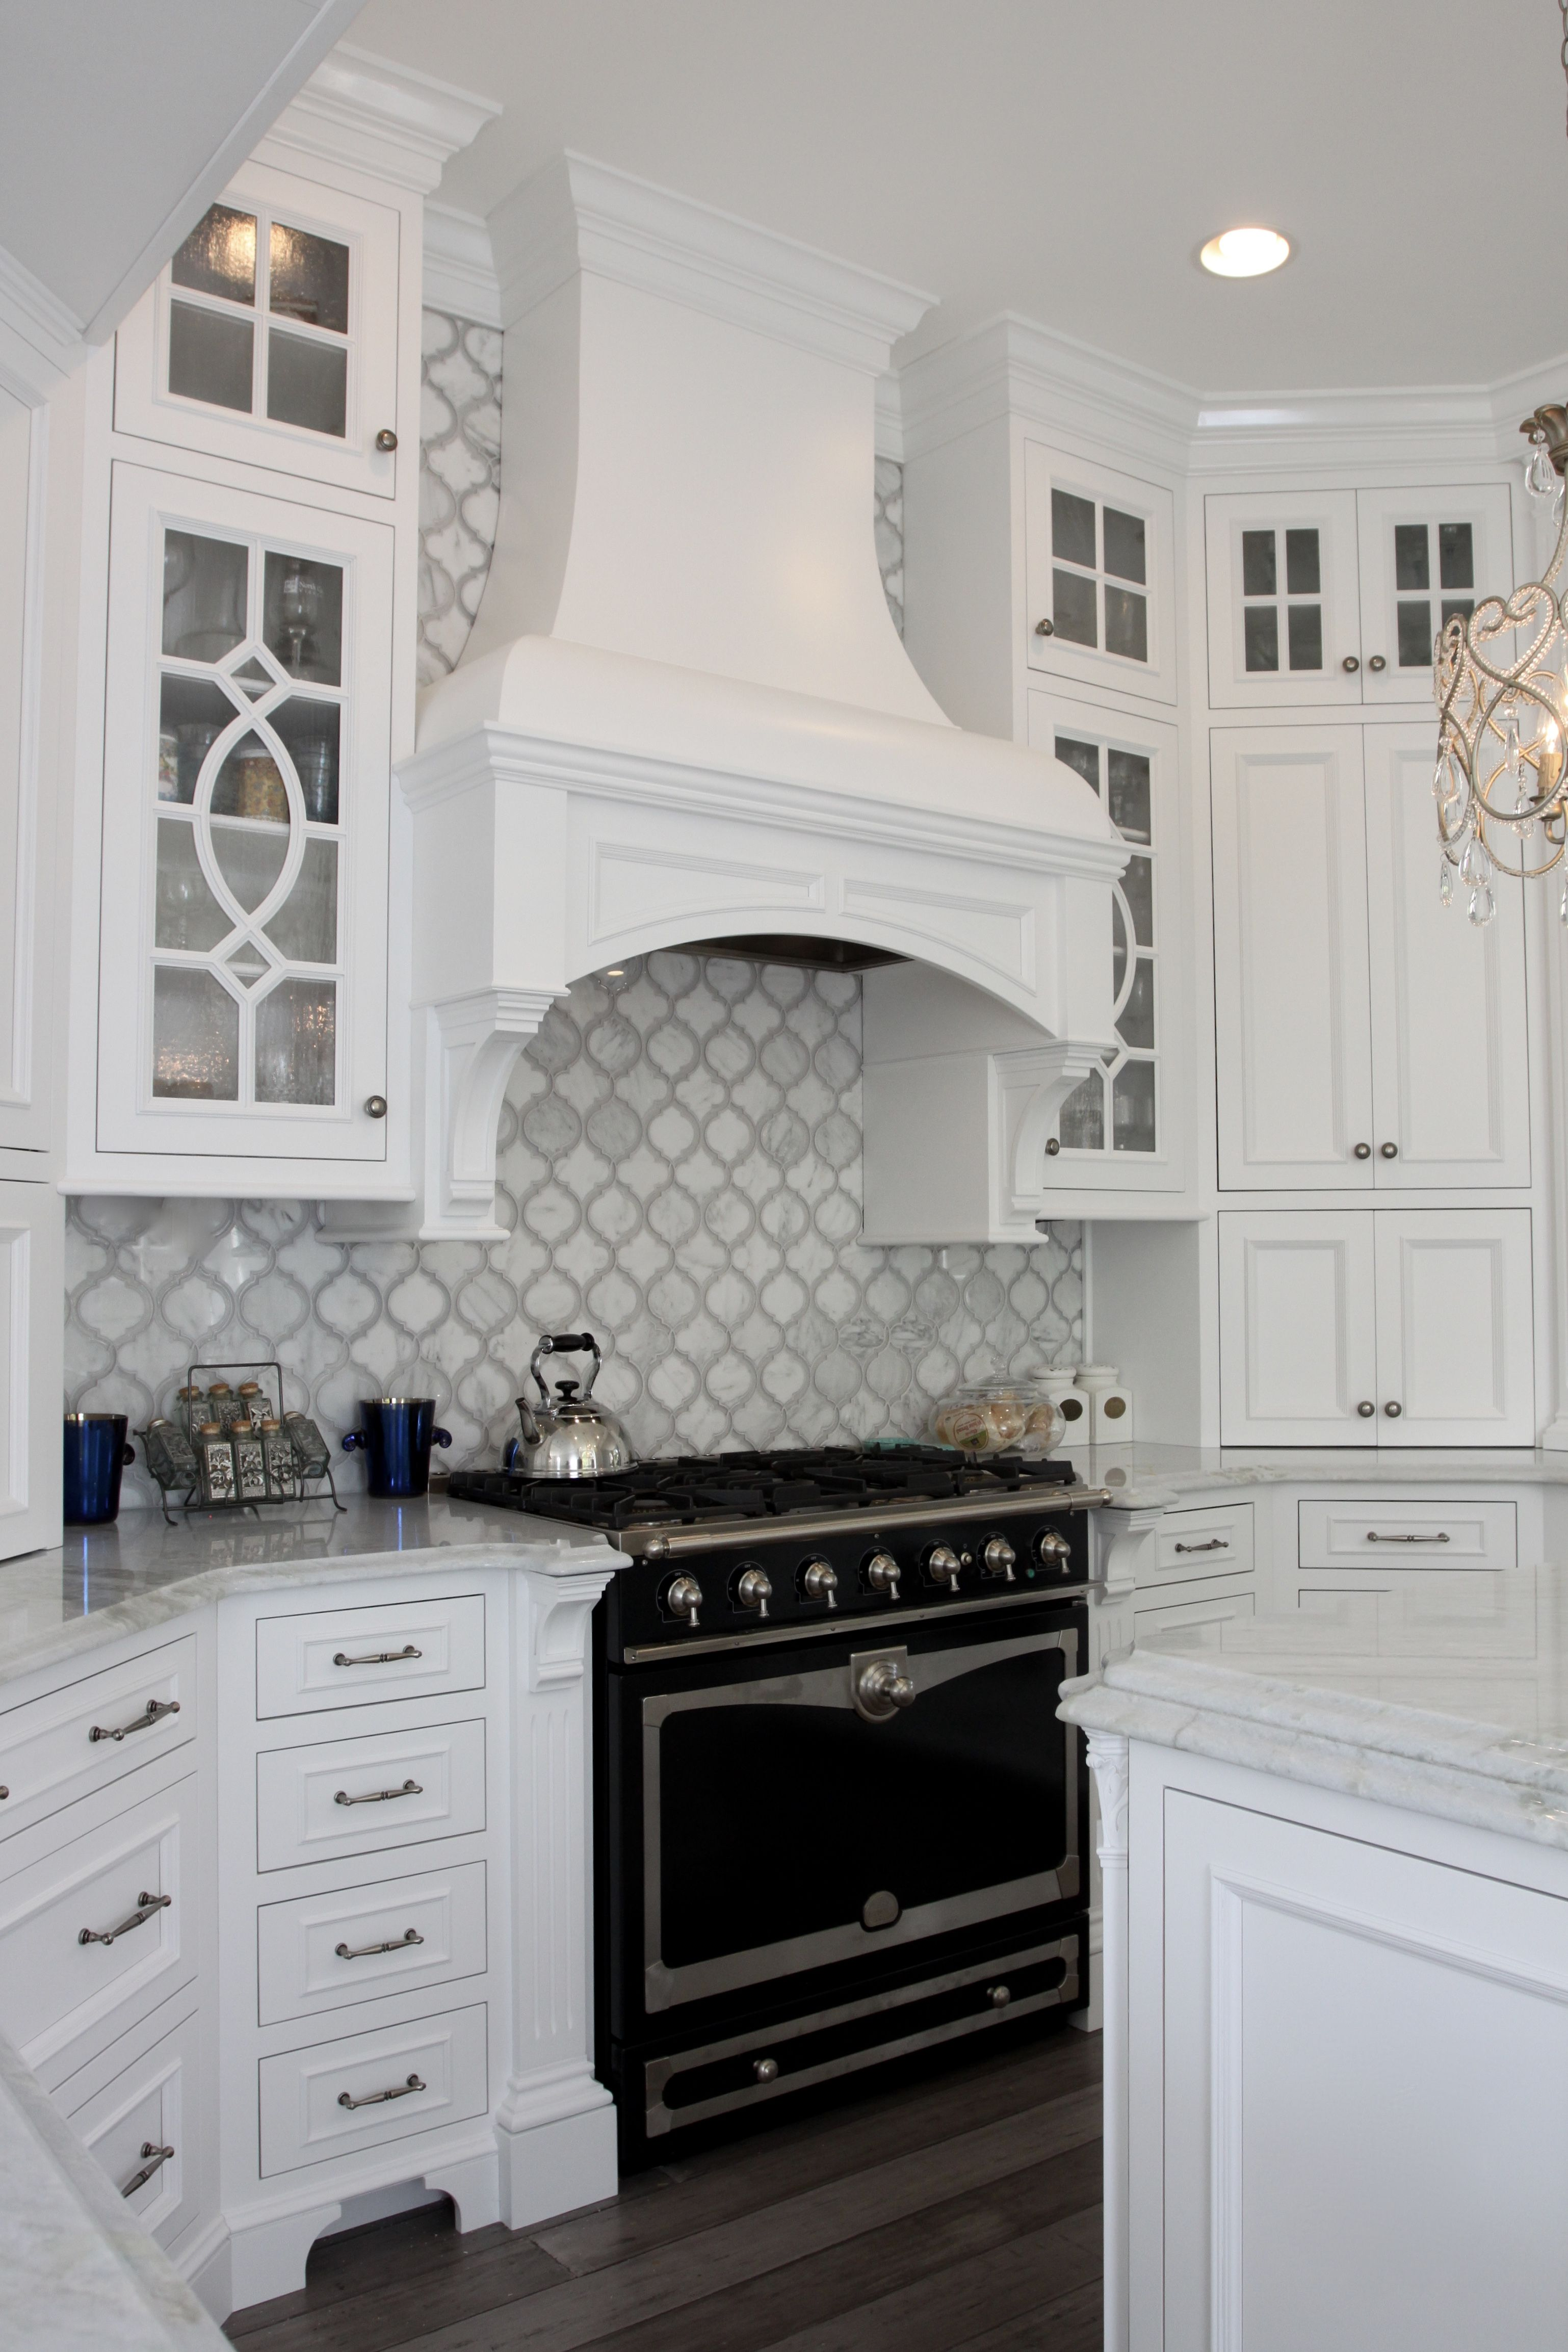 Custom White Wood Hood And La Cornue 36 Inch Range Kitchen Range Hood Kitchen Hoods Kitchen Design Modern White